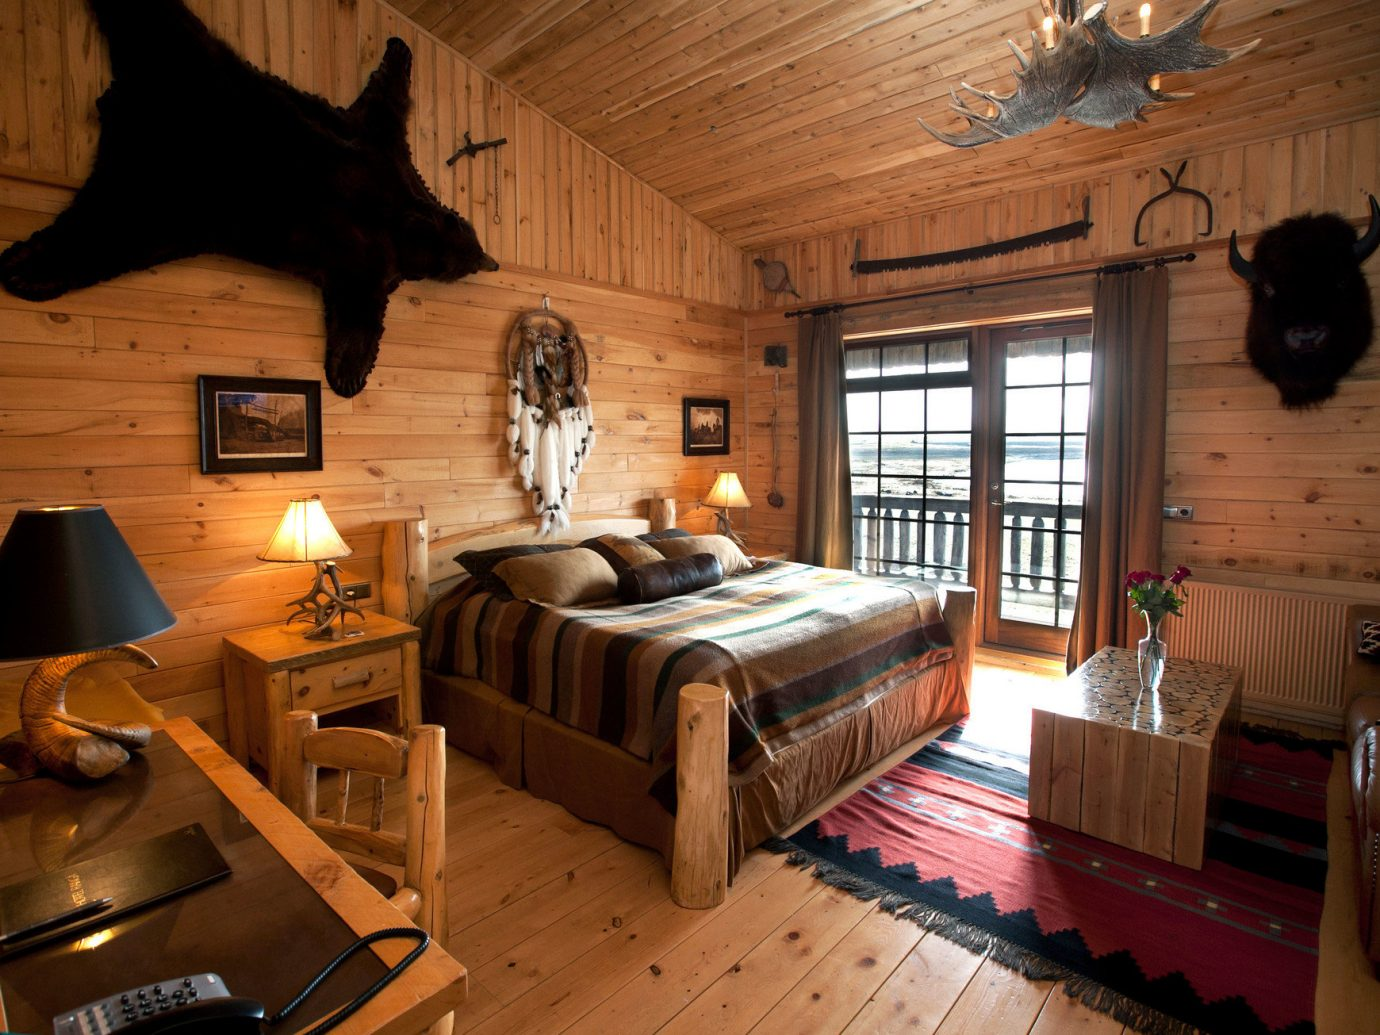 bed Bedroom Cabin charming cozy homey Hotels Iceland interior Lodge log cabin Luxury Rustic Trip Ideas warm indoor floor room property living room window house estate home cottage hardwood interior design wood farmhouse Design Suite recreation room furniture